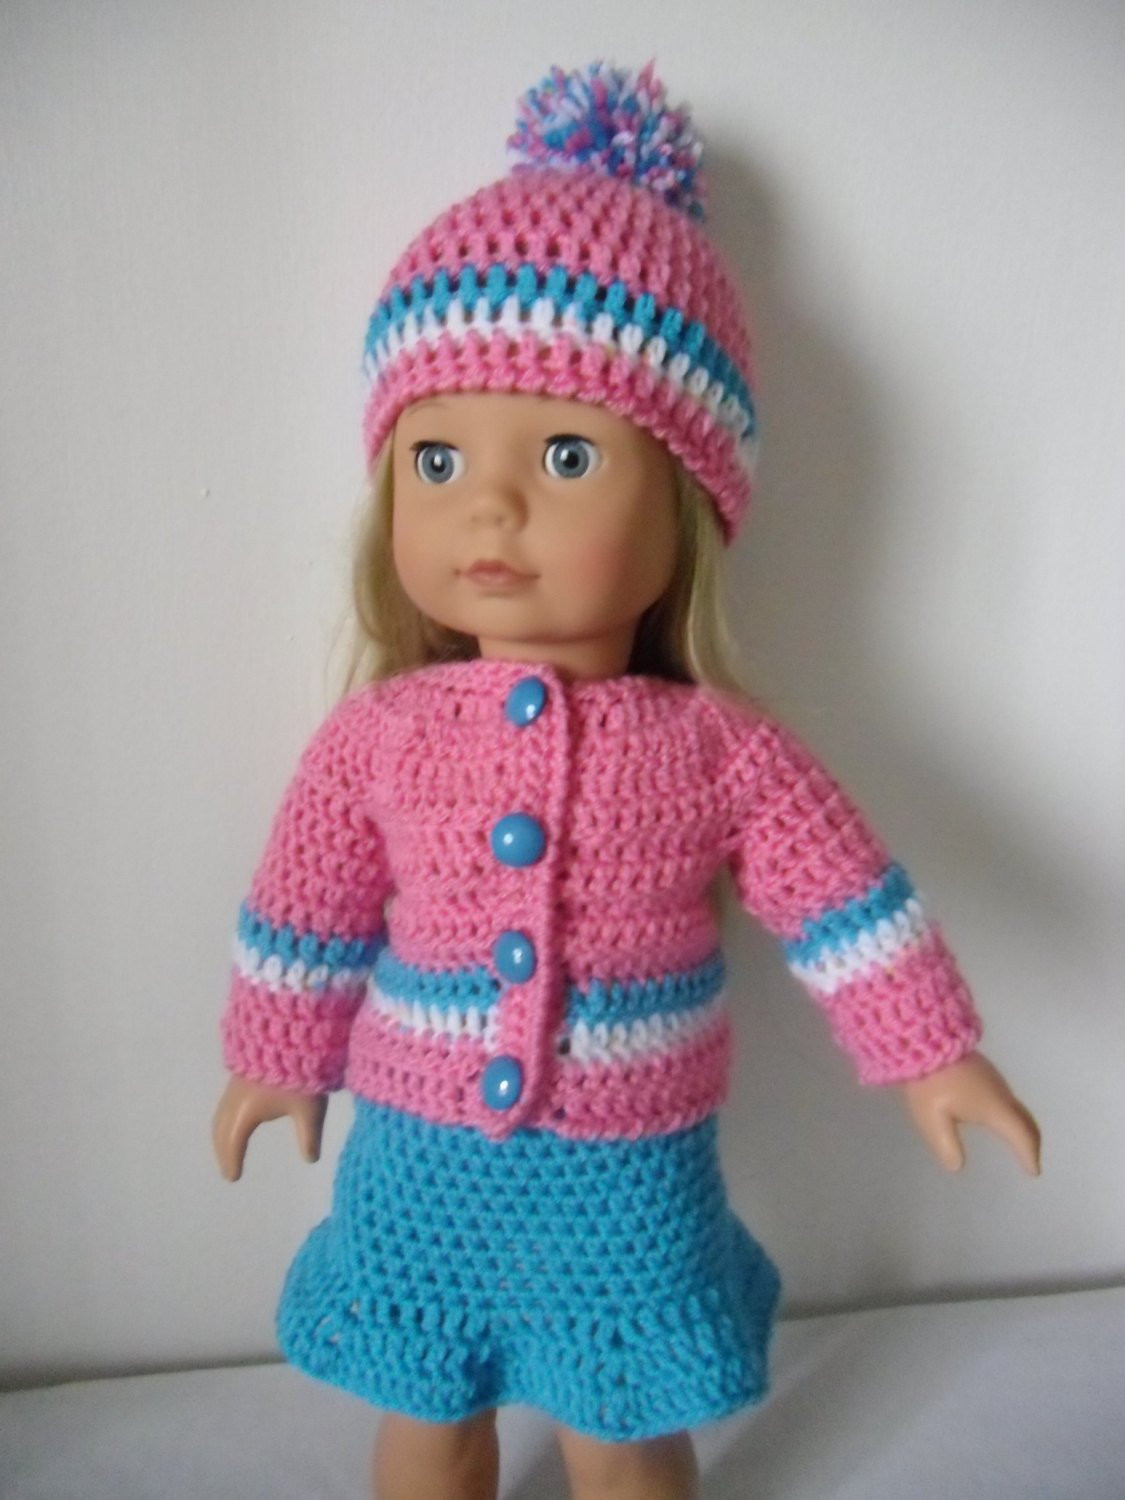 Crochet Doll Clothes Best Of Crochet Pattern Pdf for 18 Inch Doll American Girl Doll Of Fresh 48 Images Crochet Doll Clothes